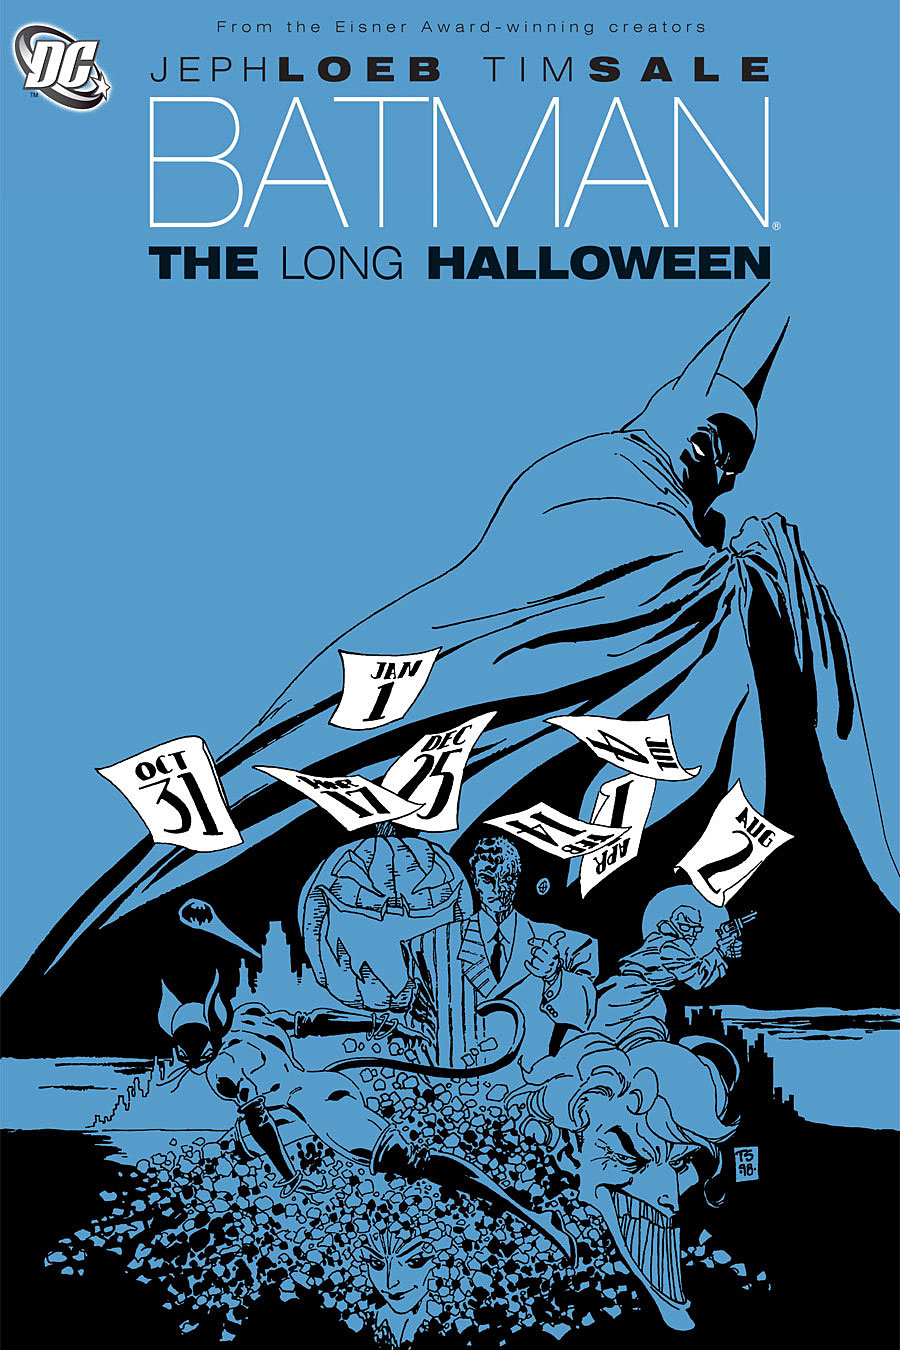 https://thewritersmultiverse.files.wordpress.com/2014/07/long-halloween-cover.jpeg